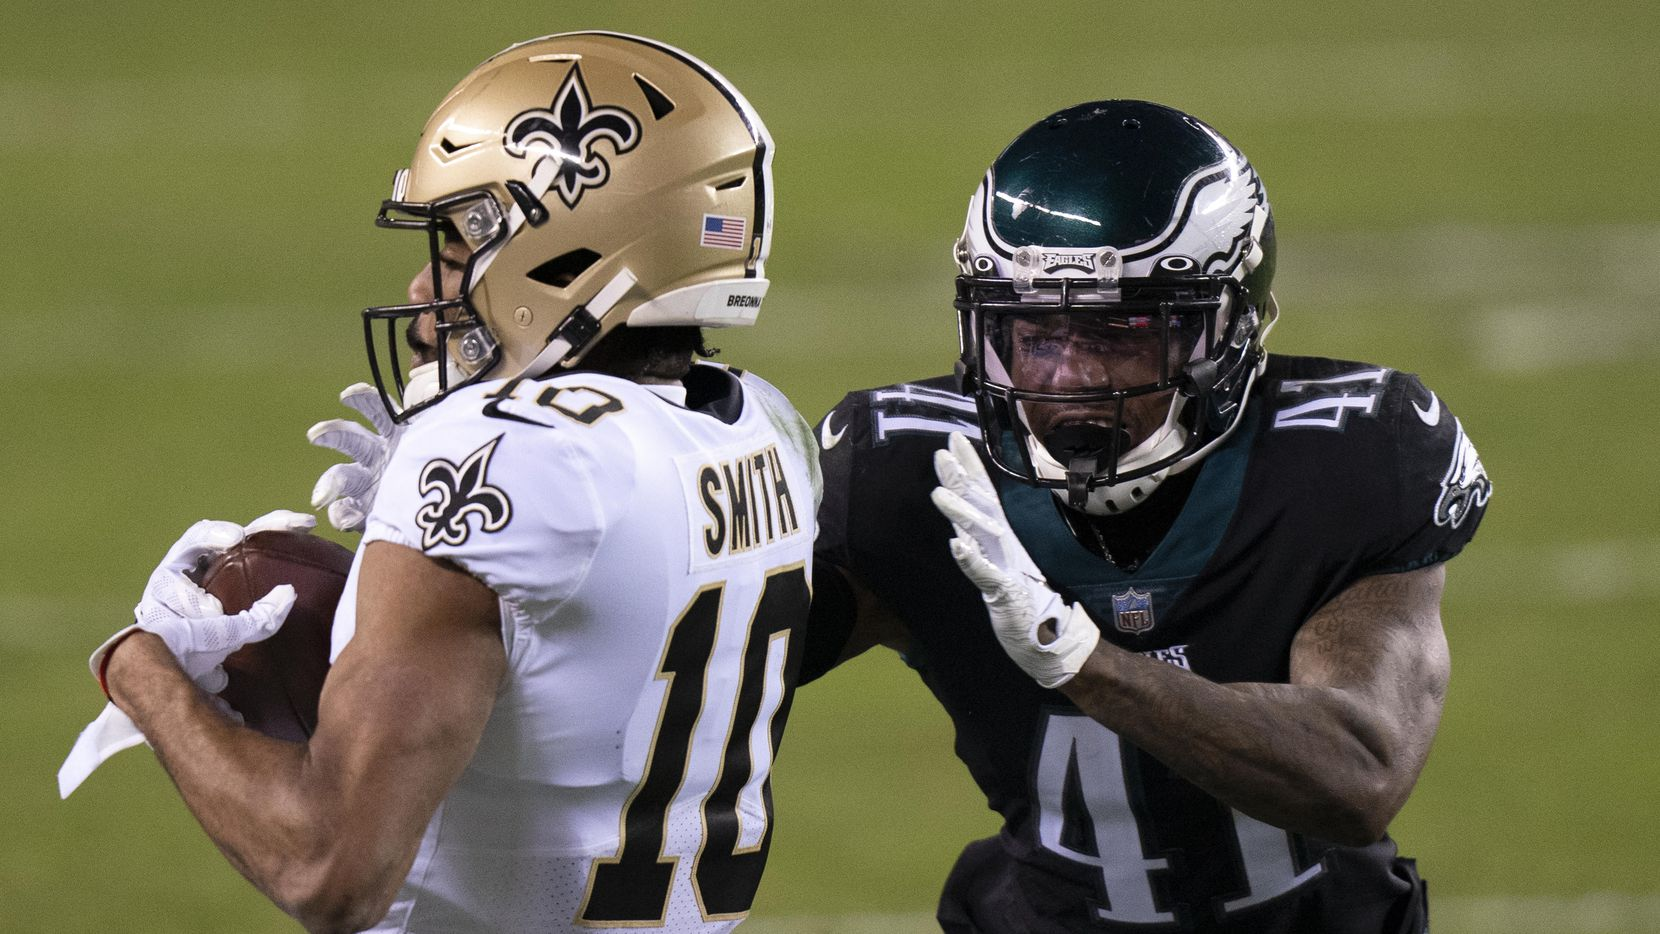 New Orleans Saints wide receiver Tre'Quan Smith (10) catches the ball with Philadelphia Eagles cornerback Kevon Seymour (41) defending during the NFL football game, Sunday, Dec. 13, 2020, in Philadelphia.